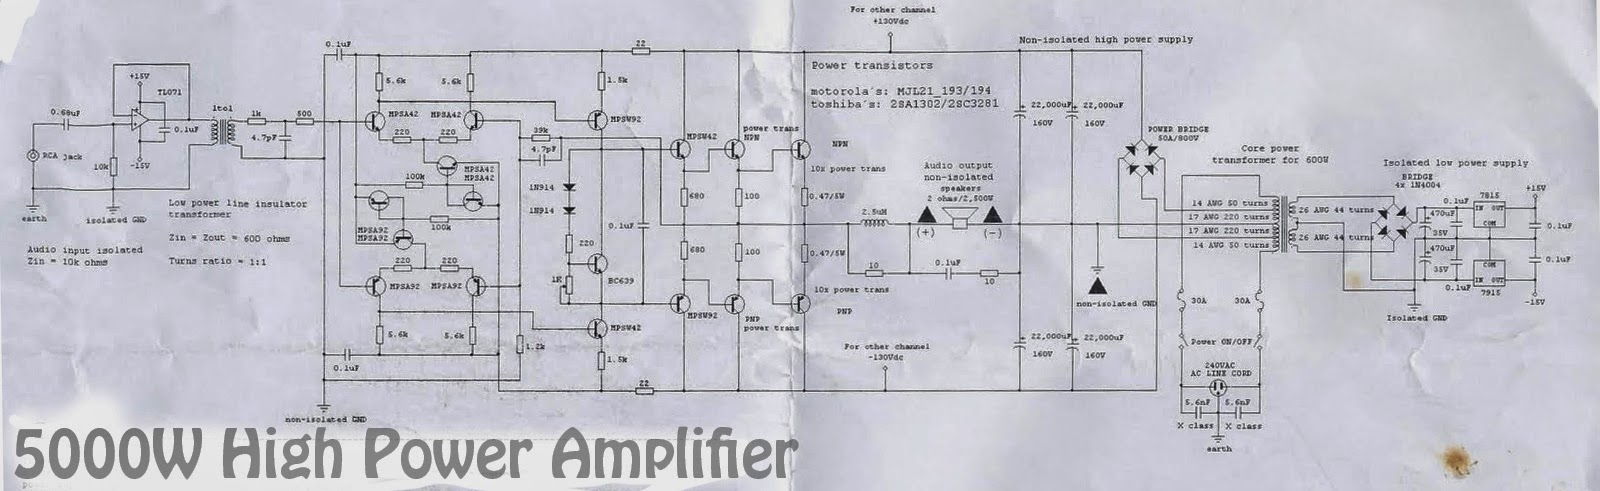 5000w high power amplifier circuit